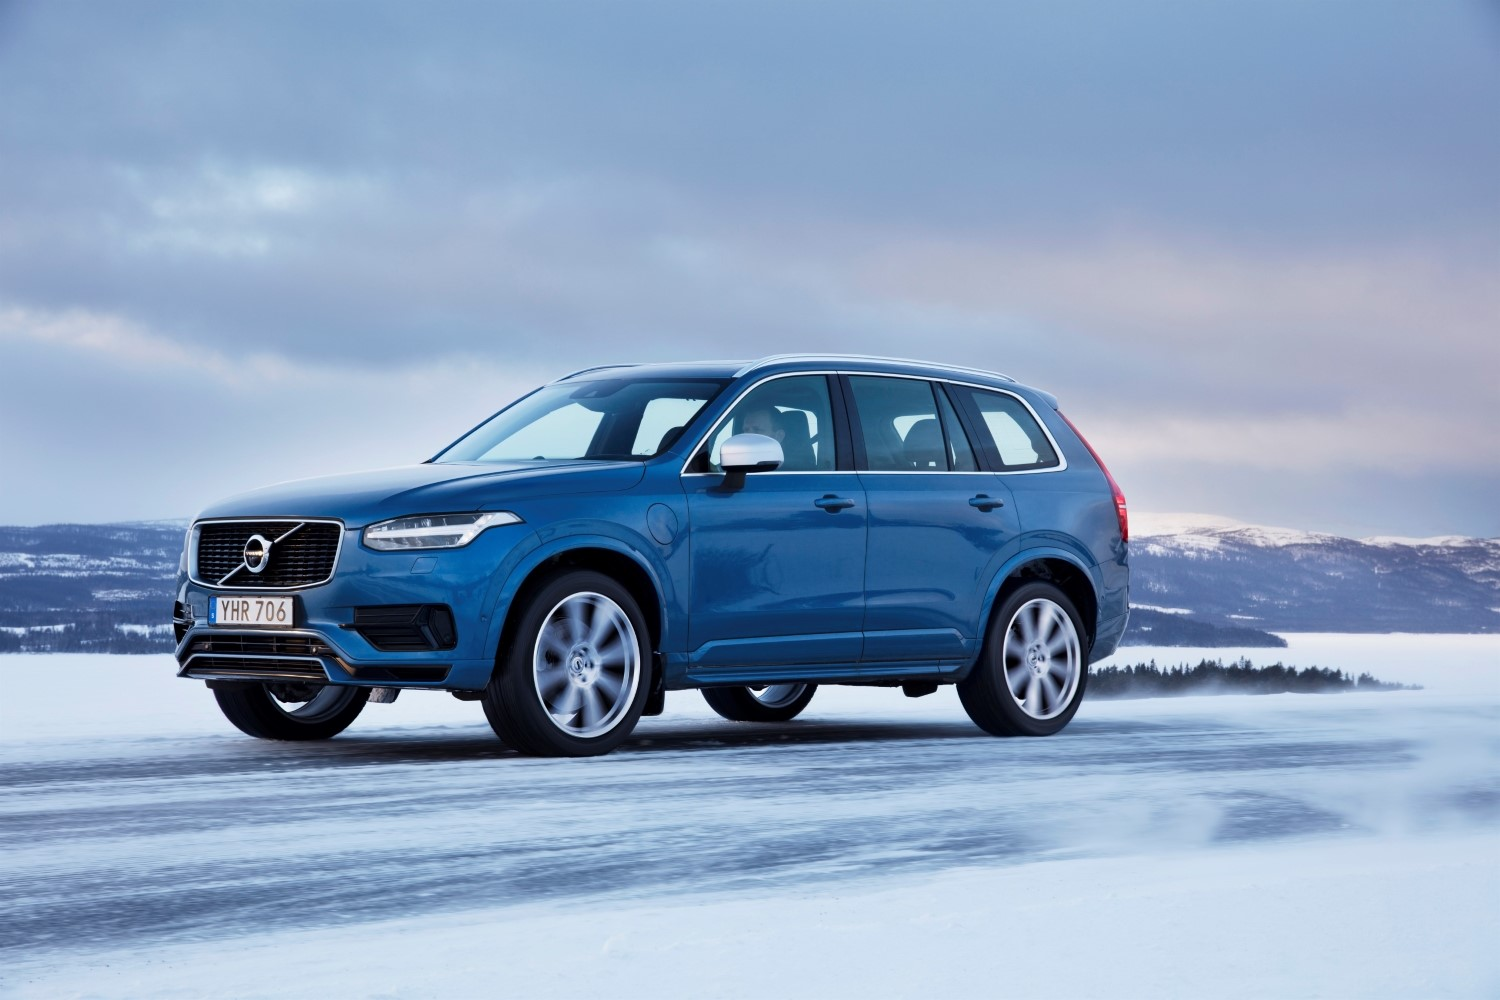 2019 Volvo XC90 SUV Specs, Review, and Pricing | CarSession